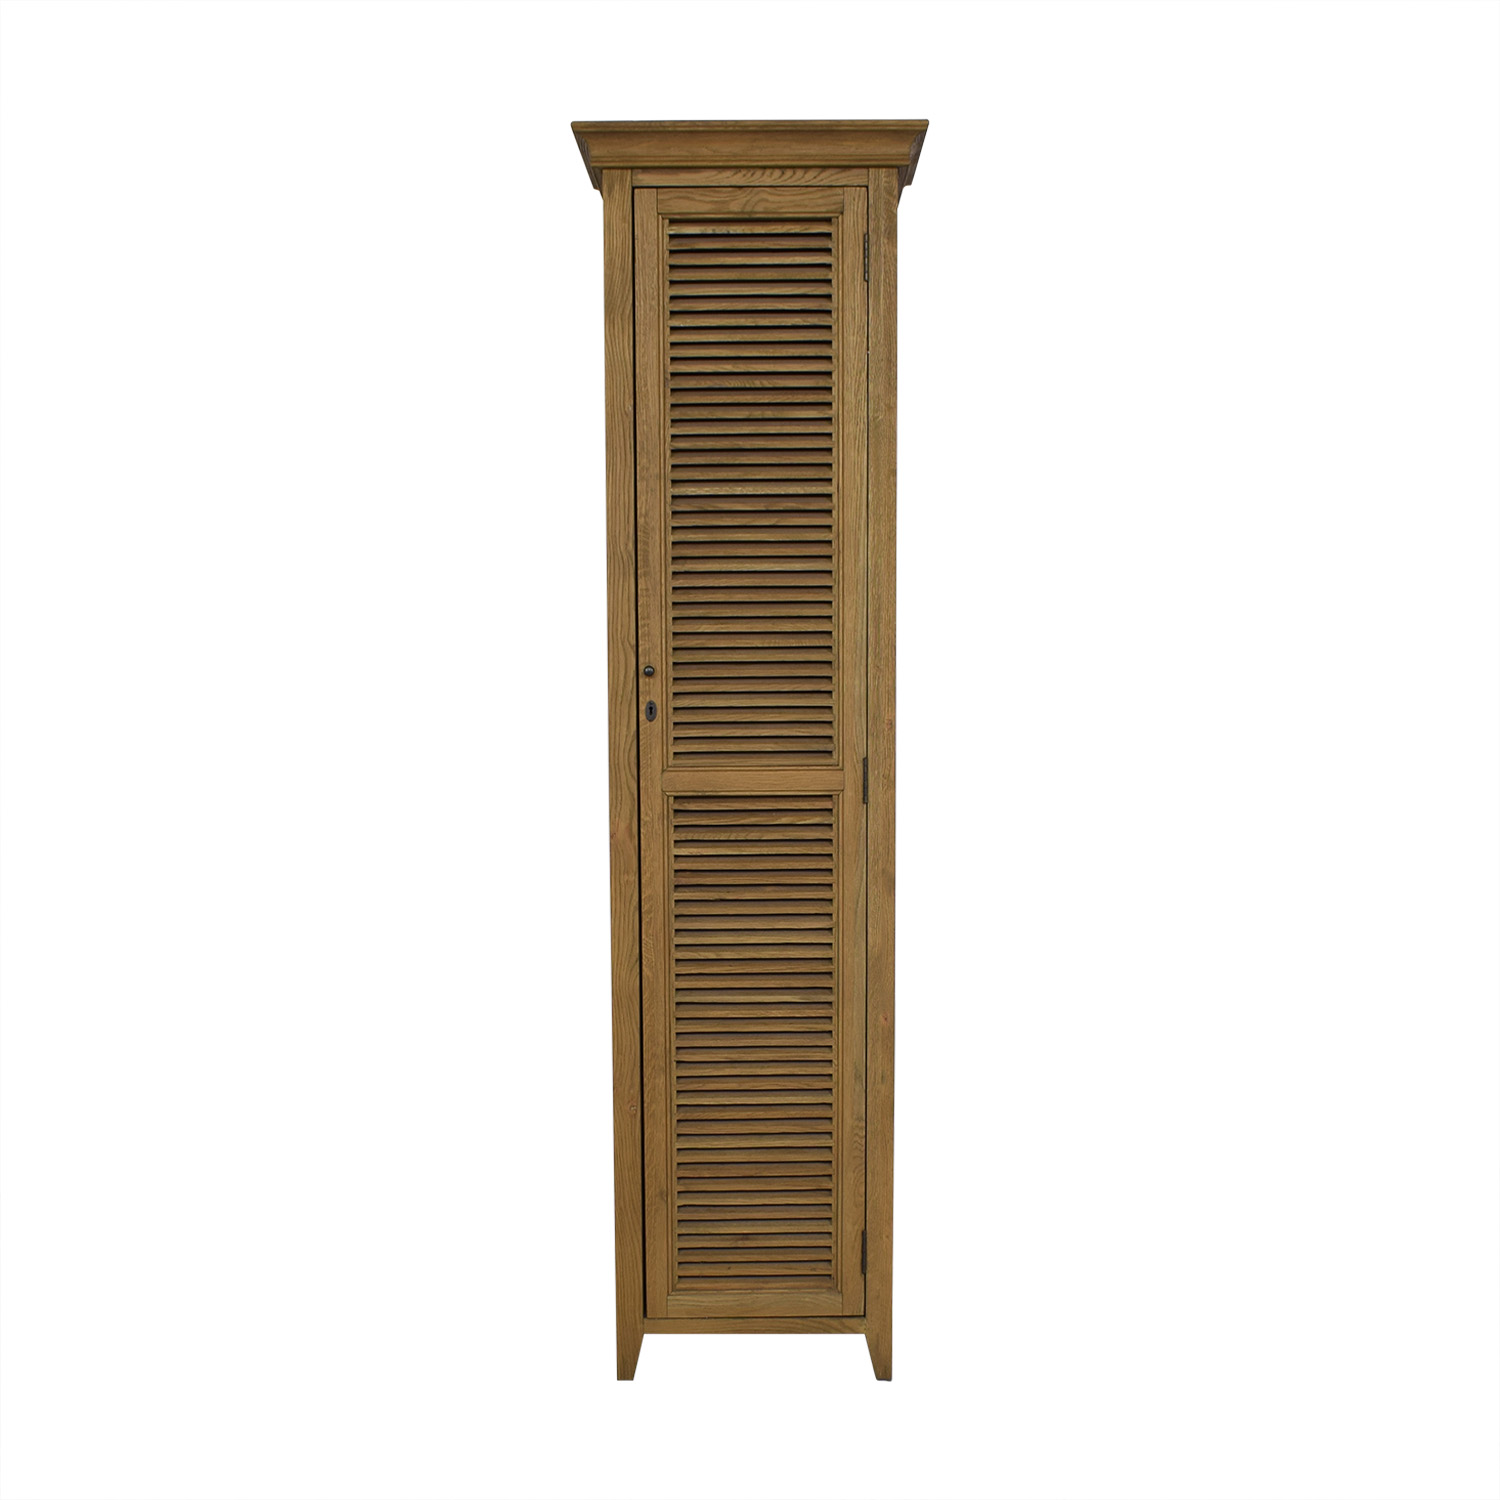 Restoration Hardware Shutter Tall Bath Cabinet / Storage